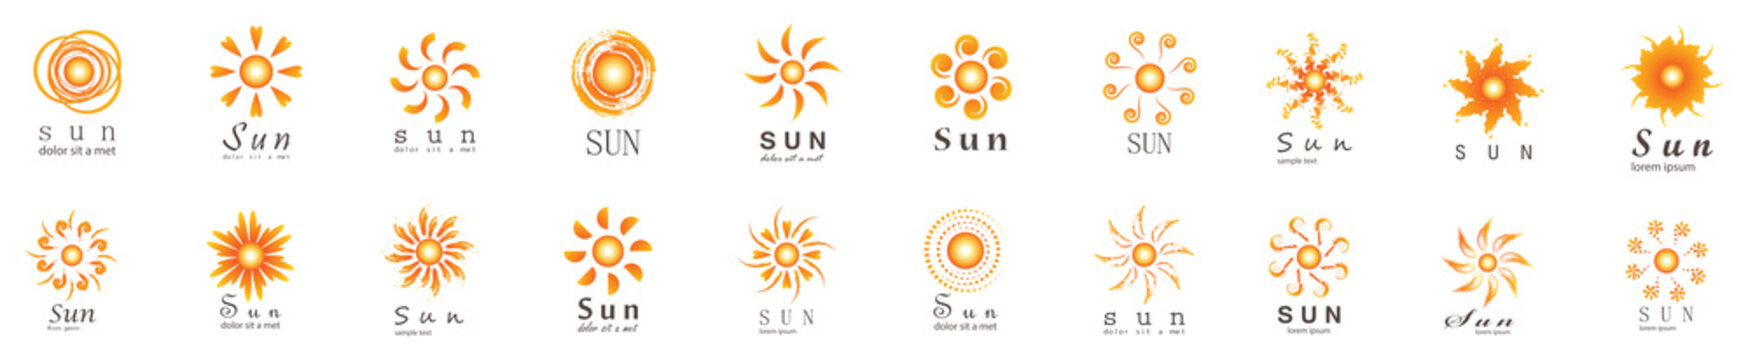 Abstract Sun Logo And Icon Set - Isolated On White Background, Vector Illustration. Abstract Sun Logo And Icons For Solar Energy Logo And Sunburst Icon Design. Abstract Sun, Vector Illustration